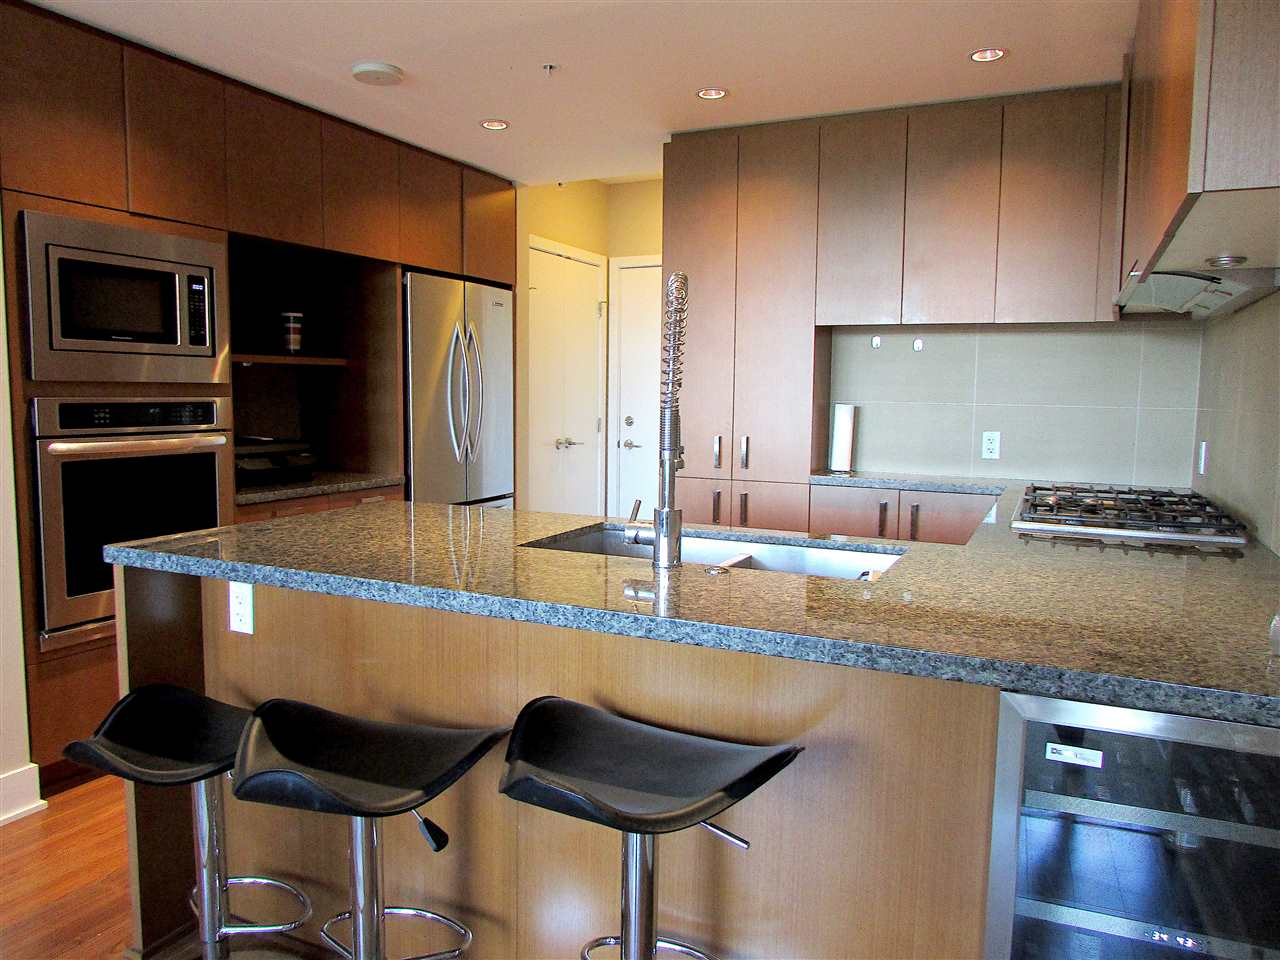 "Photo 3: 1506 3008 GLEN Drive in Coquitlam: North Coquitlam Condo for sale in ""M2"" : MLS® # R2193359"